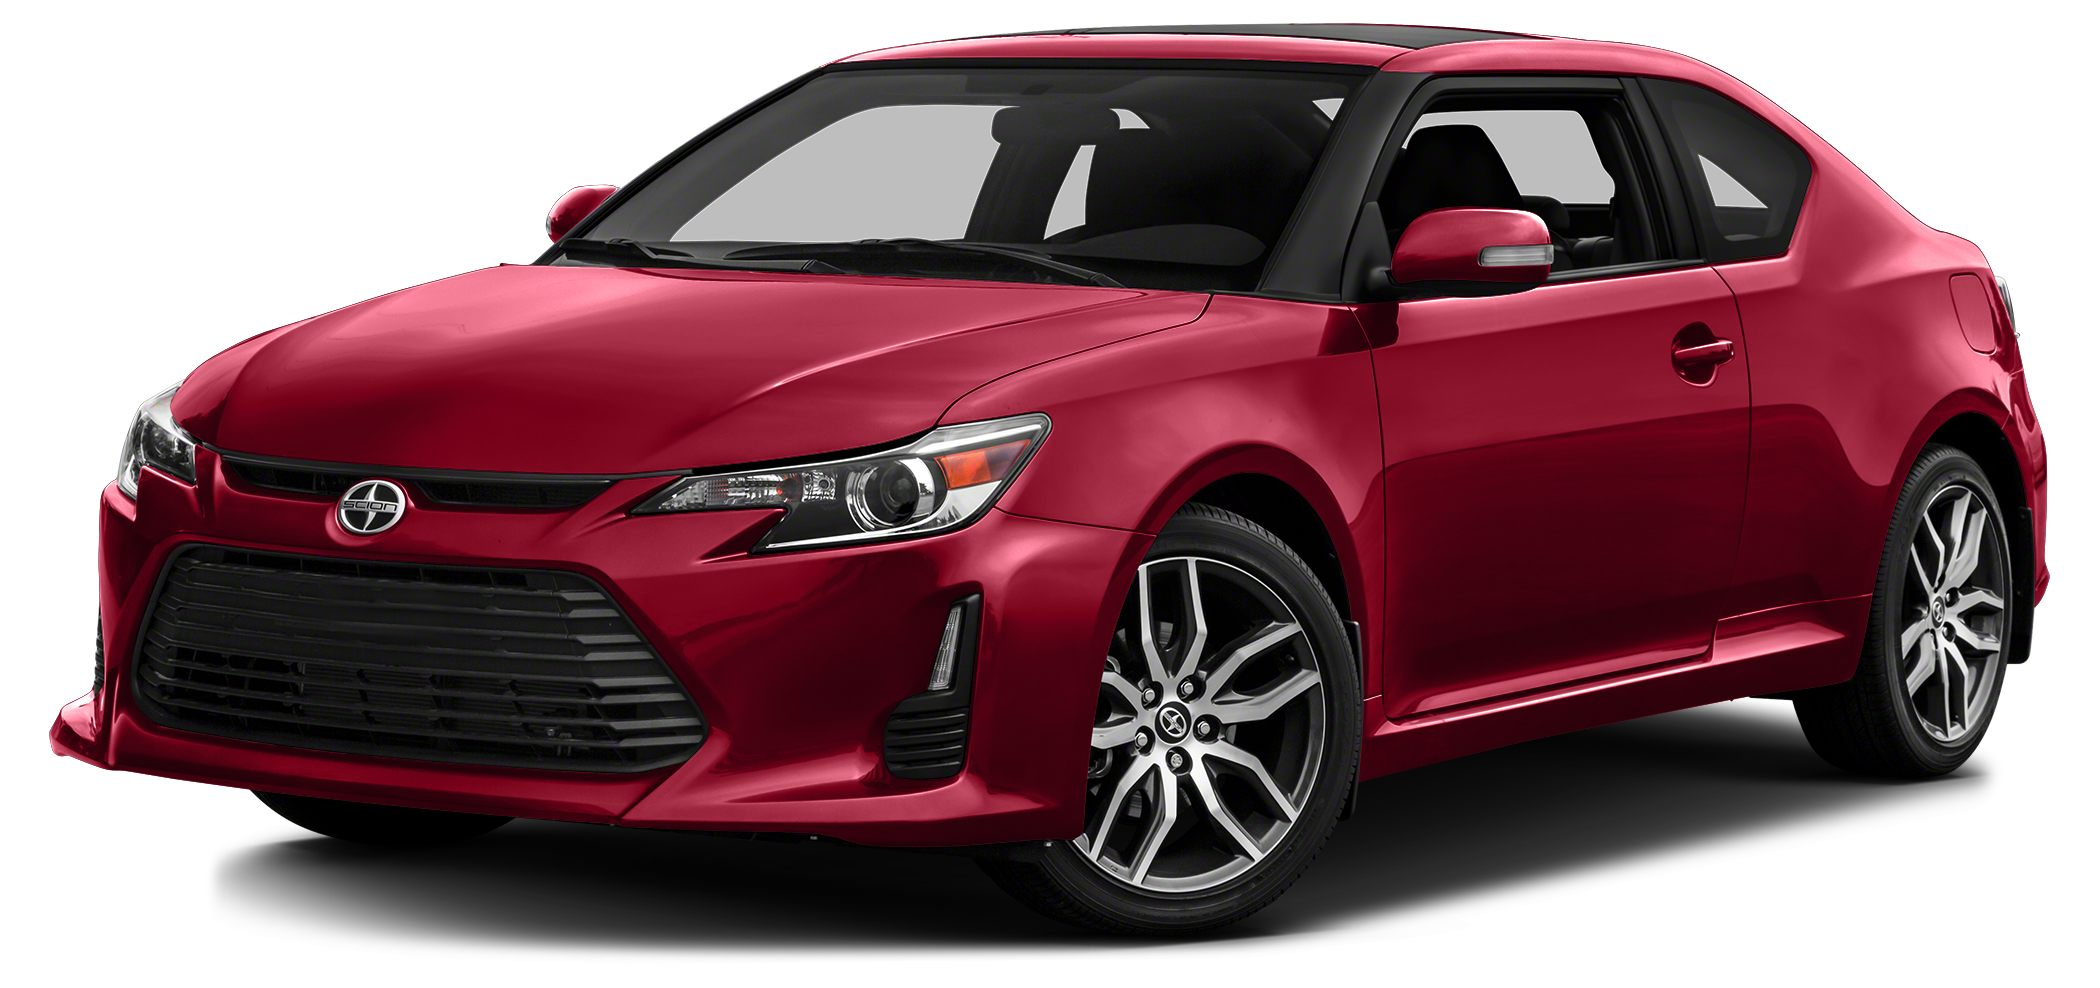 2016 Scion tC Base Introducing the 2016 Scion tC It offers the latest in technological innovation